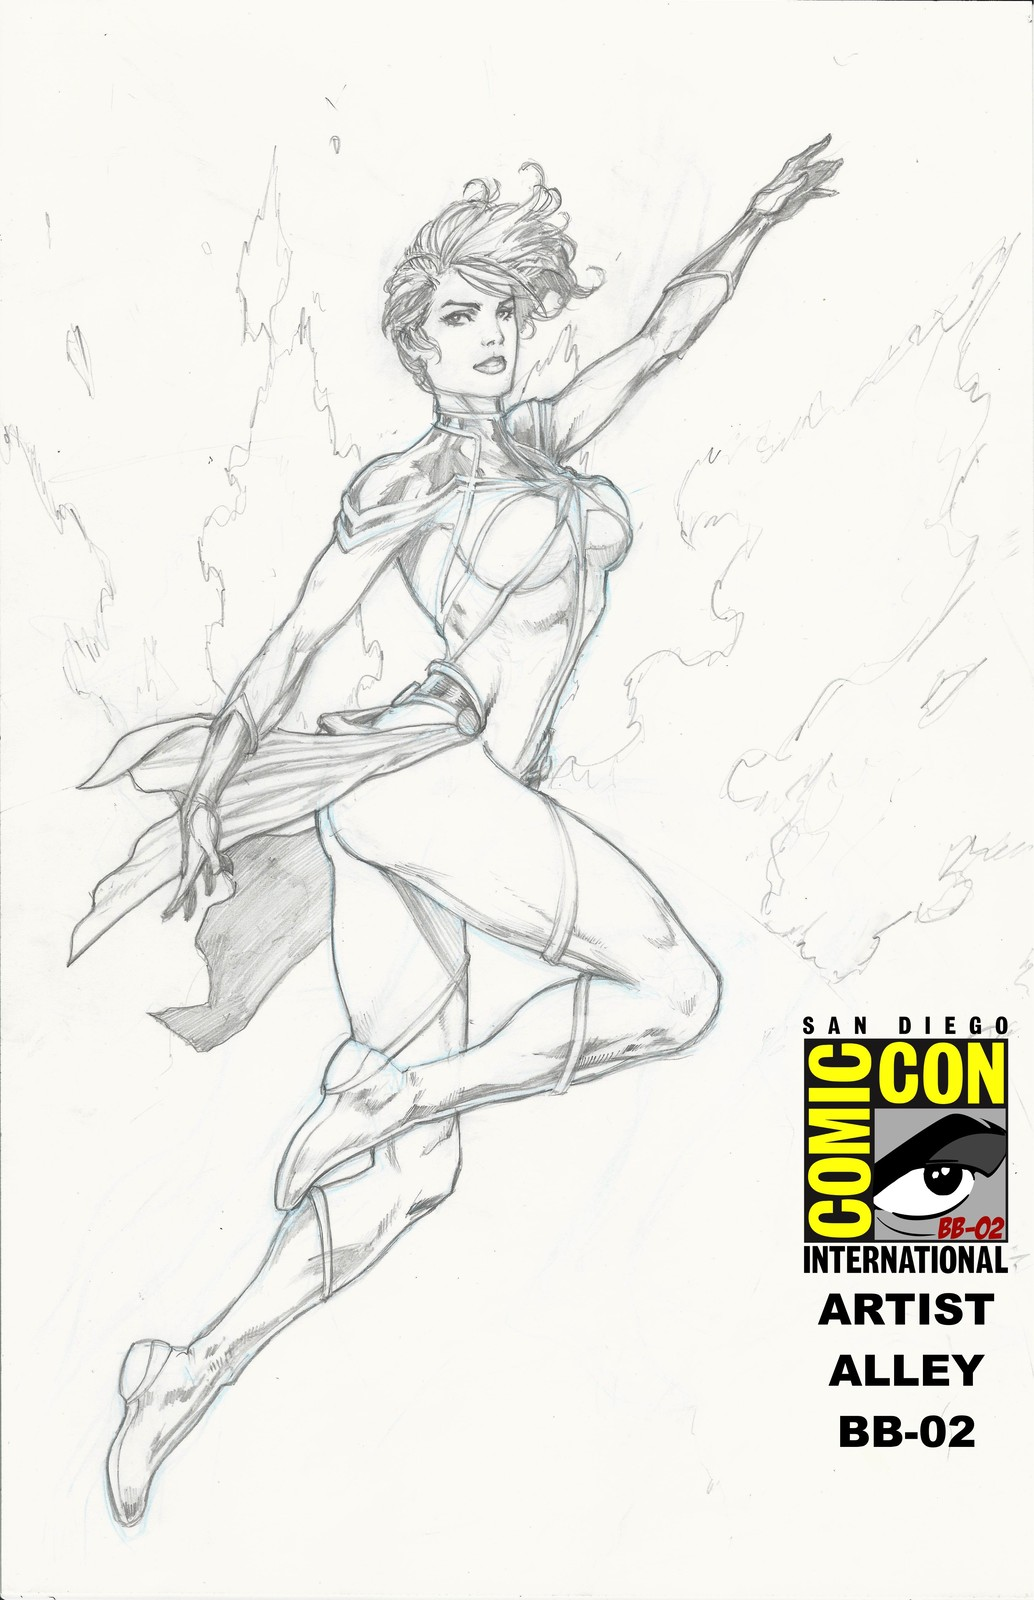 Carol Danvers in pencils. Inks coming soon. A San Diego Comic Con commission. Come by the artist alley BB - 02. Hope to see you there.